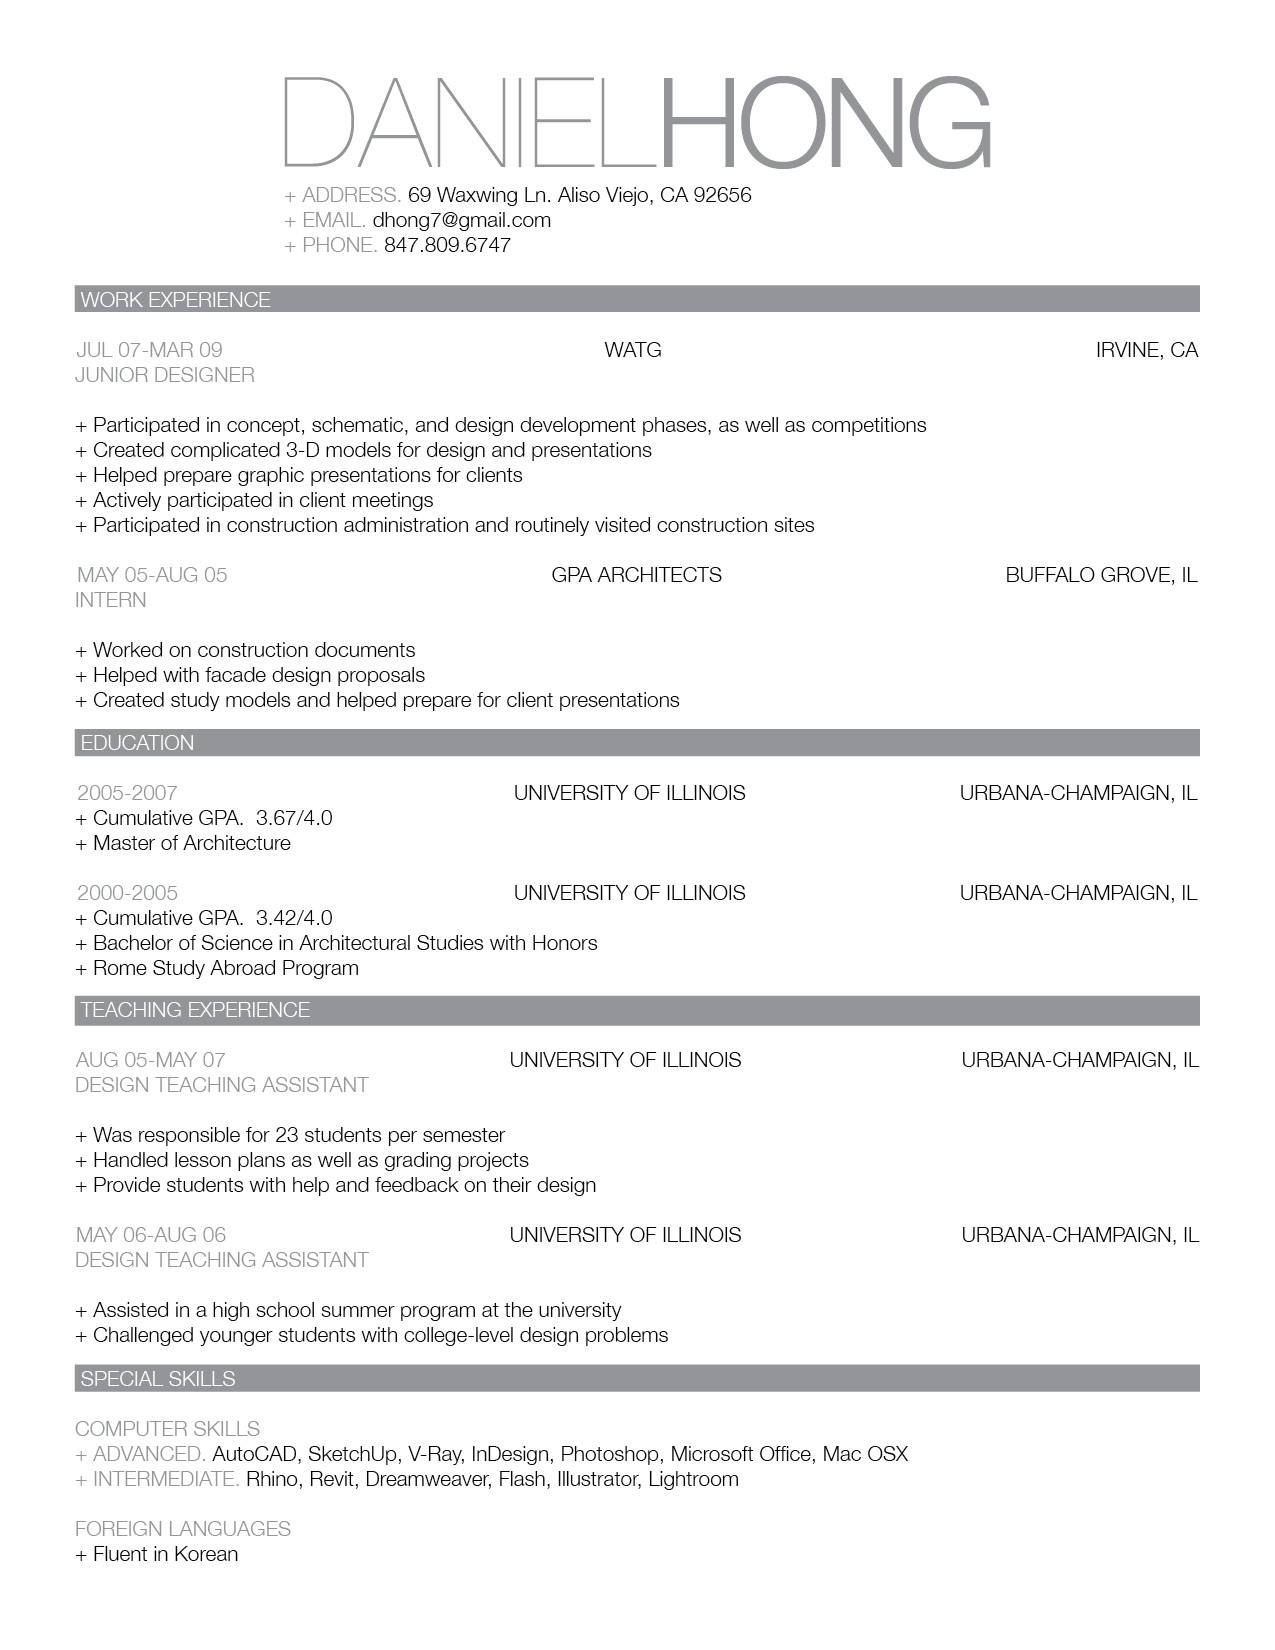 Opposenewapstandardsus  Mesmerizing Resume Chronological Basic Basic Sample Resume Cover Letter  With Fetching Simple  With Amazing Professional Resume Also What Is A Resume In Addition Nursing Resume And Resume Examples As Well As Example Resumes Additionally Resume Layout From Writeupdonwebhomeipnet With Opposenewapstandardsus  Fetching Resume Chronological Basic Basic Sample Resume Cover Letter  With Amazing Simple  And Mesmerizing Professional Resume Also What Is A Resume In Addition Nursing Resume From Writeupdonwebhomeipnet